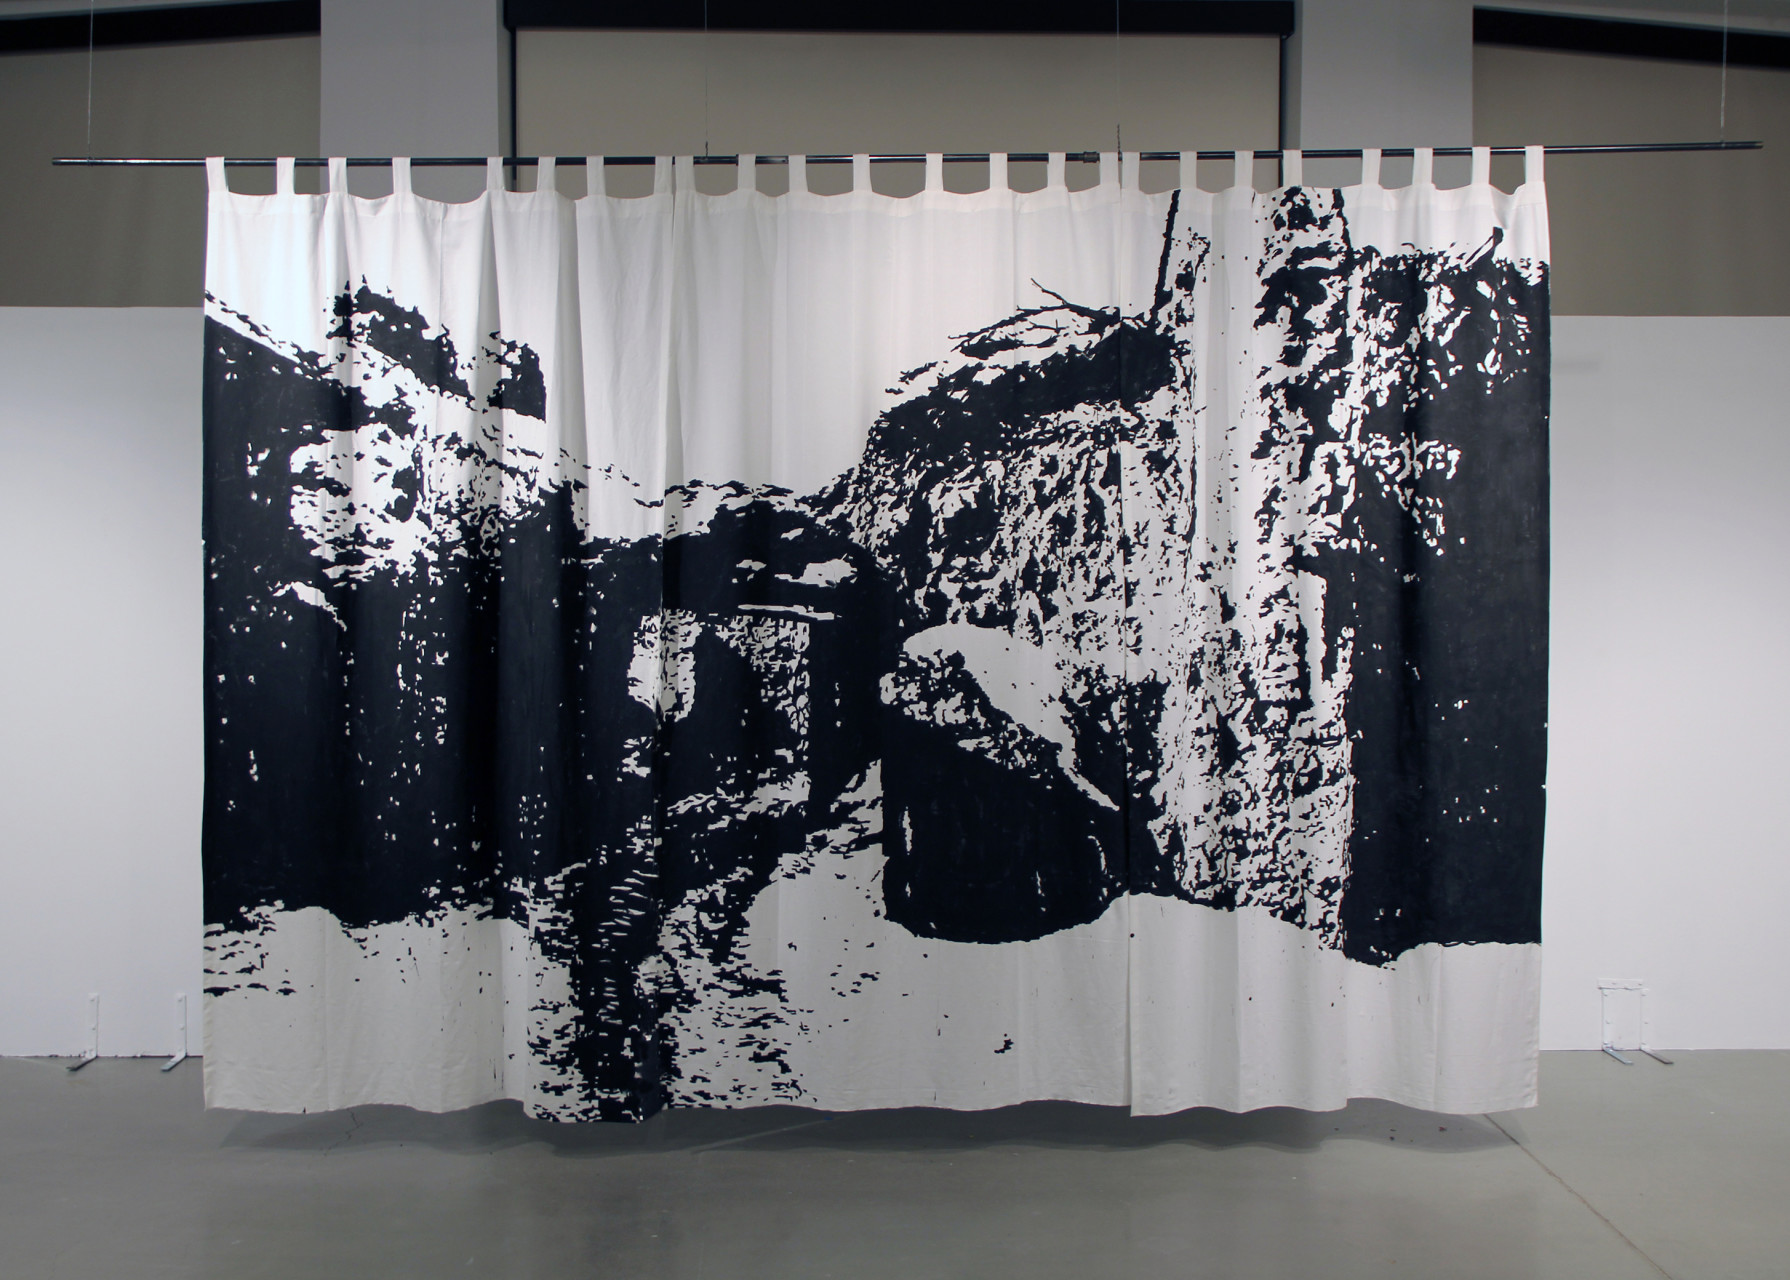 'Bagram District Compound' 2013  acrylic on cotton curtain 120 x 200 inches